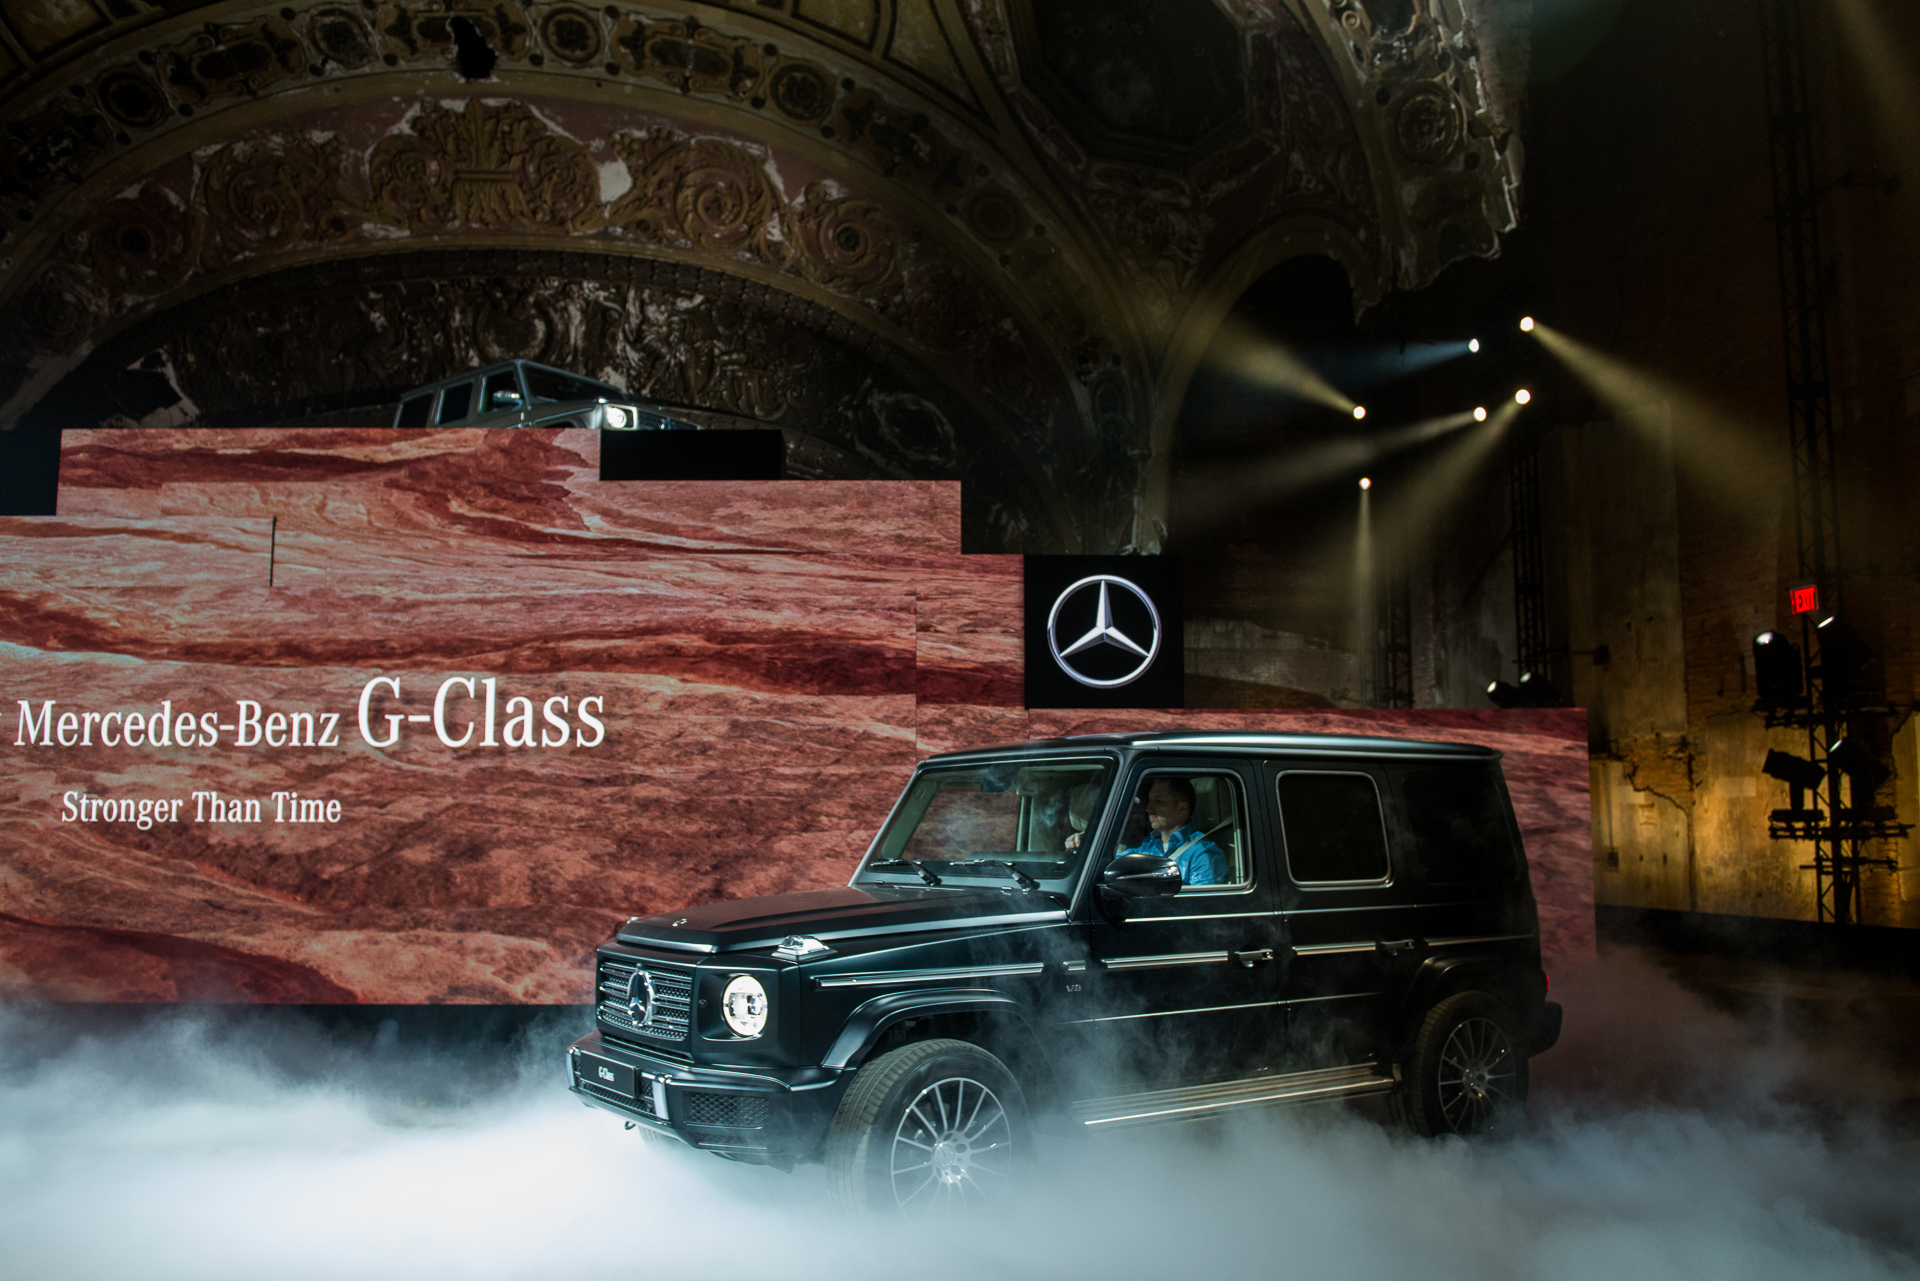 toyota and apple, 2019 mercedes g-class, toyota avalon hybrid